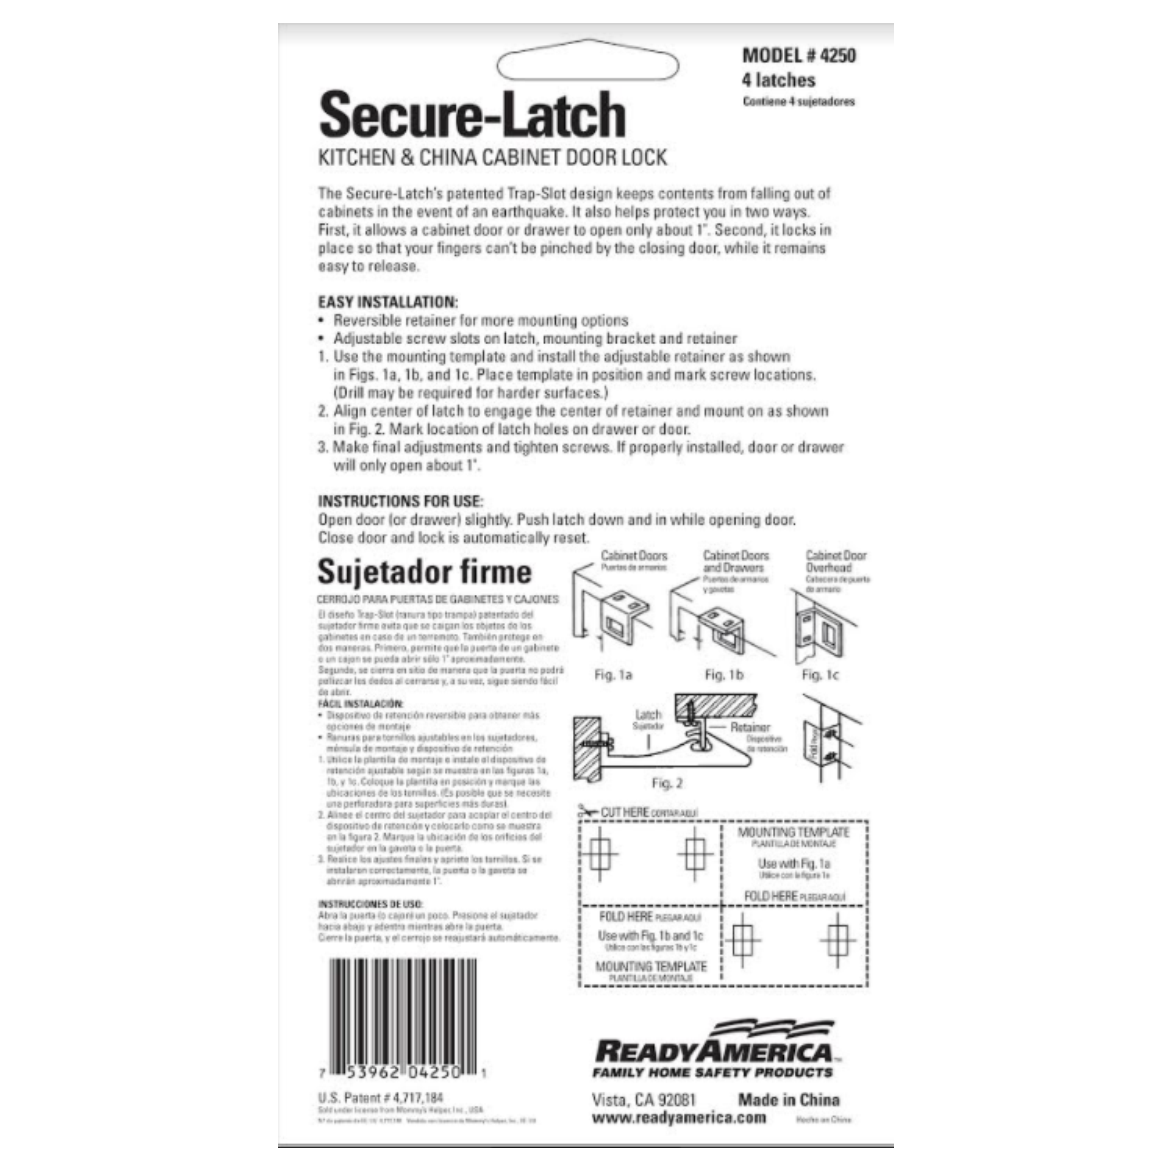 2 Packs of 4 Each Secure-Latch Kitchen /& China Cabinet Door Locks Quake Hold